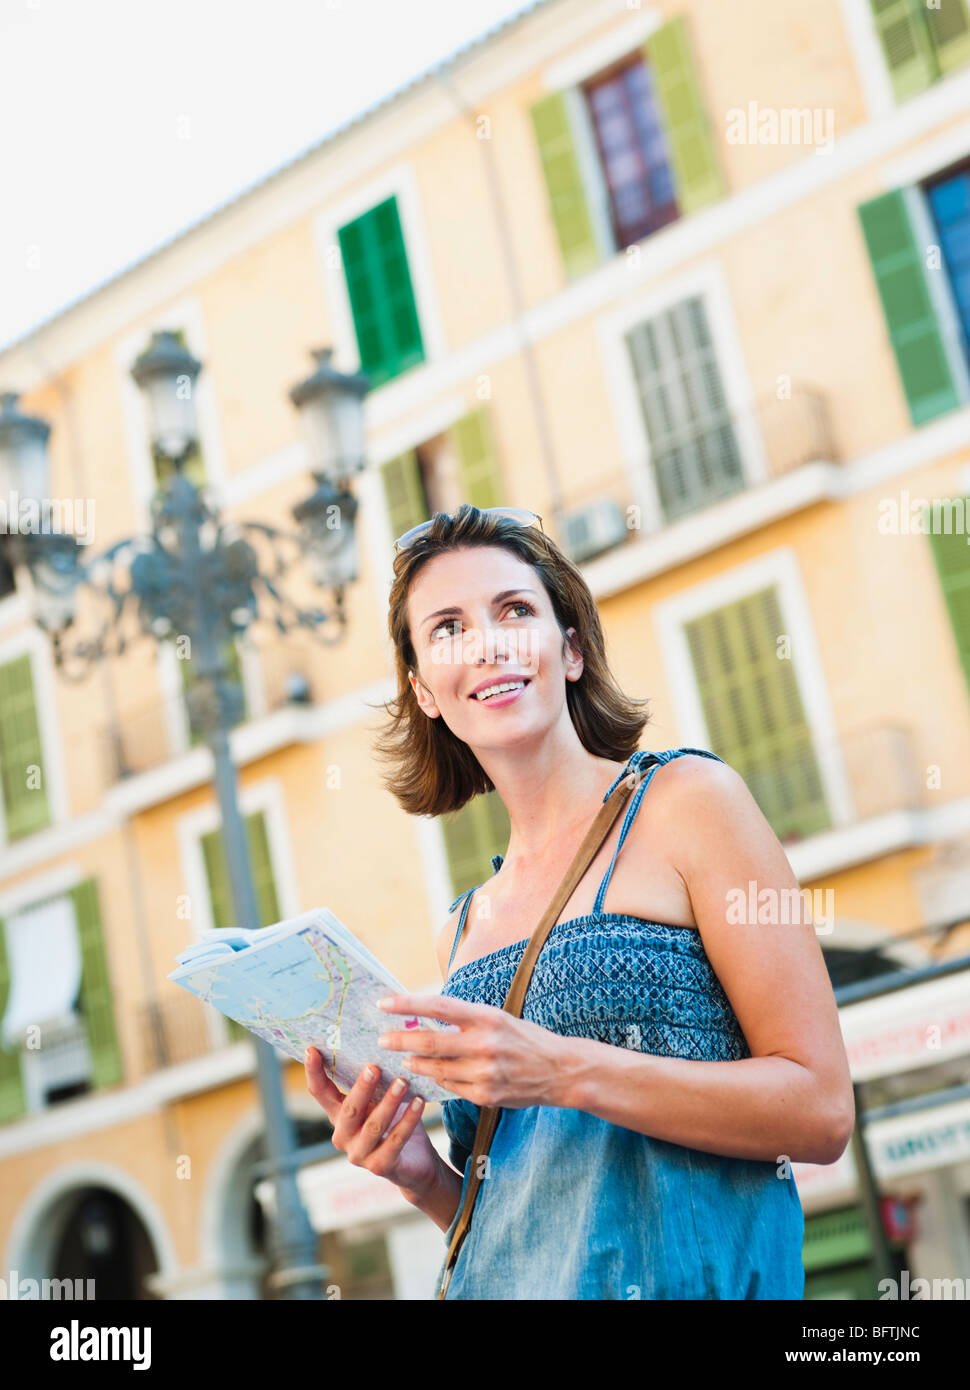 woman holding map looking around - Stock Image